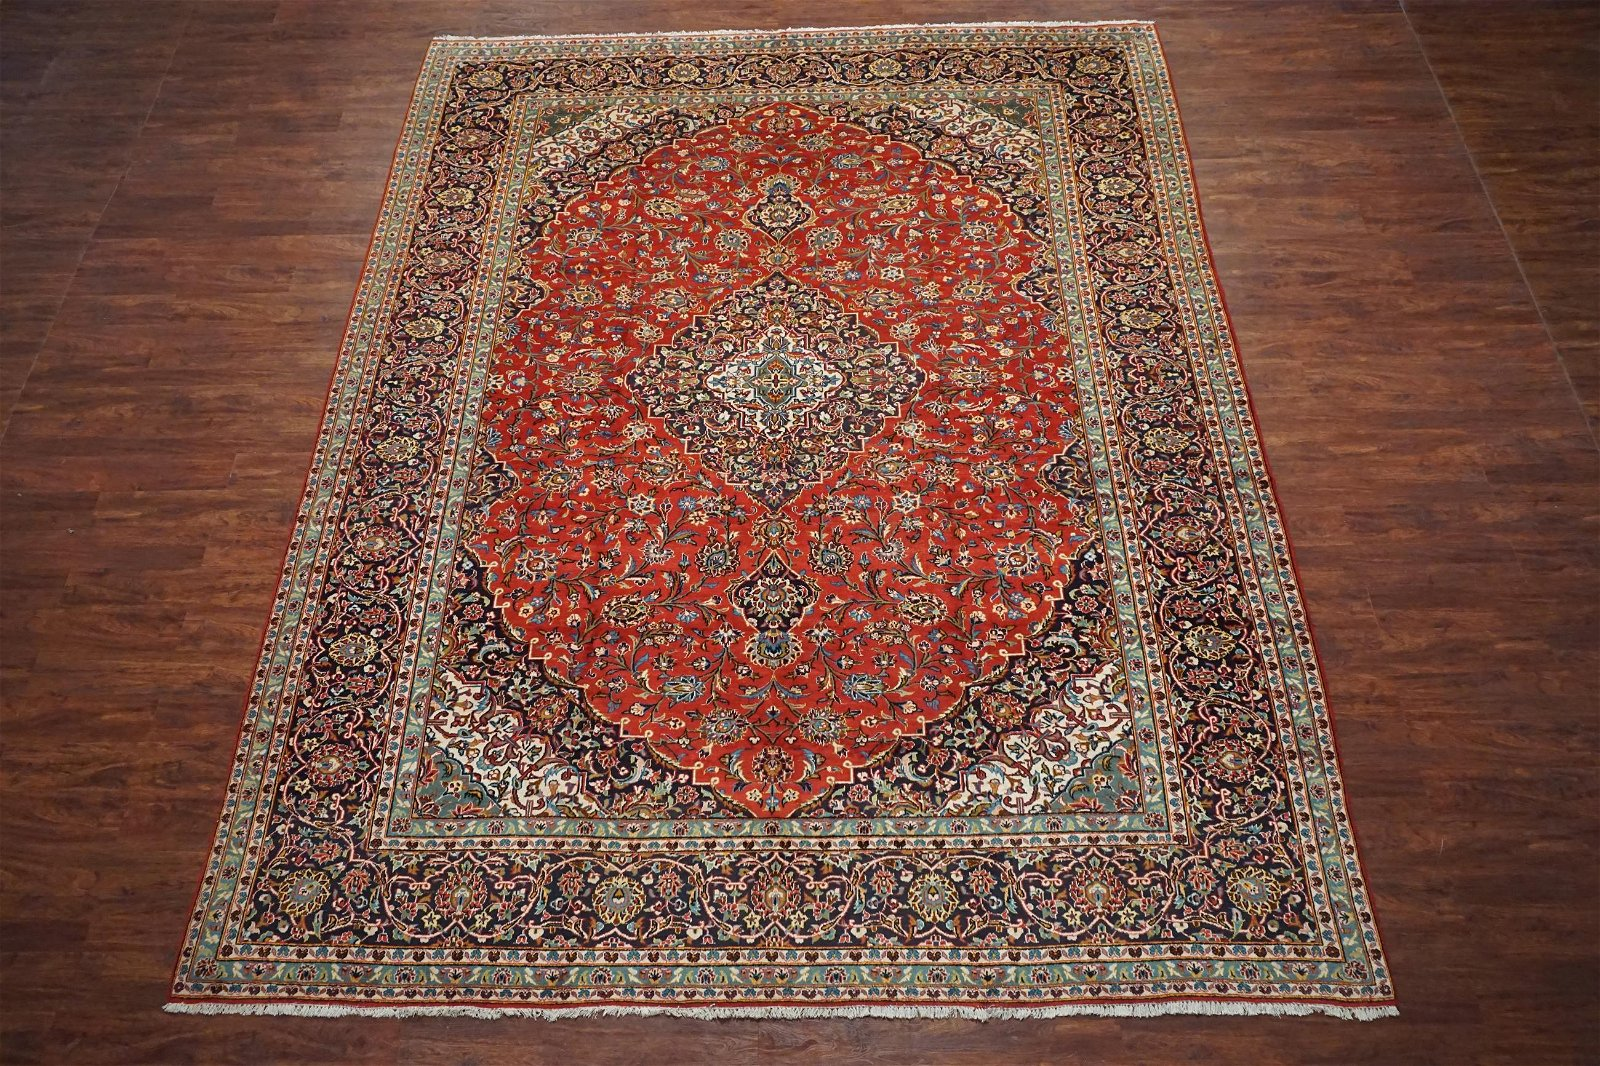 Antique 11X14 Persian Kashan Hand-Knotted Wool Rug